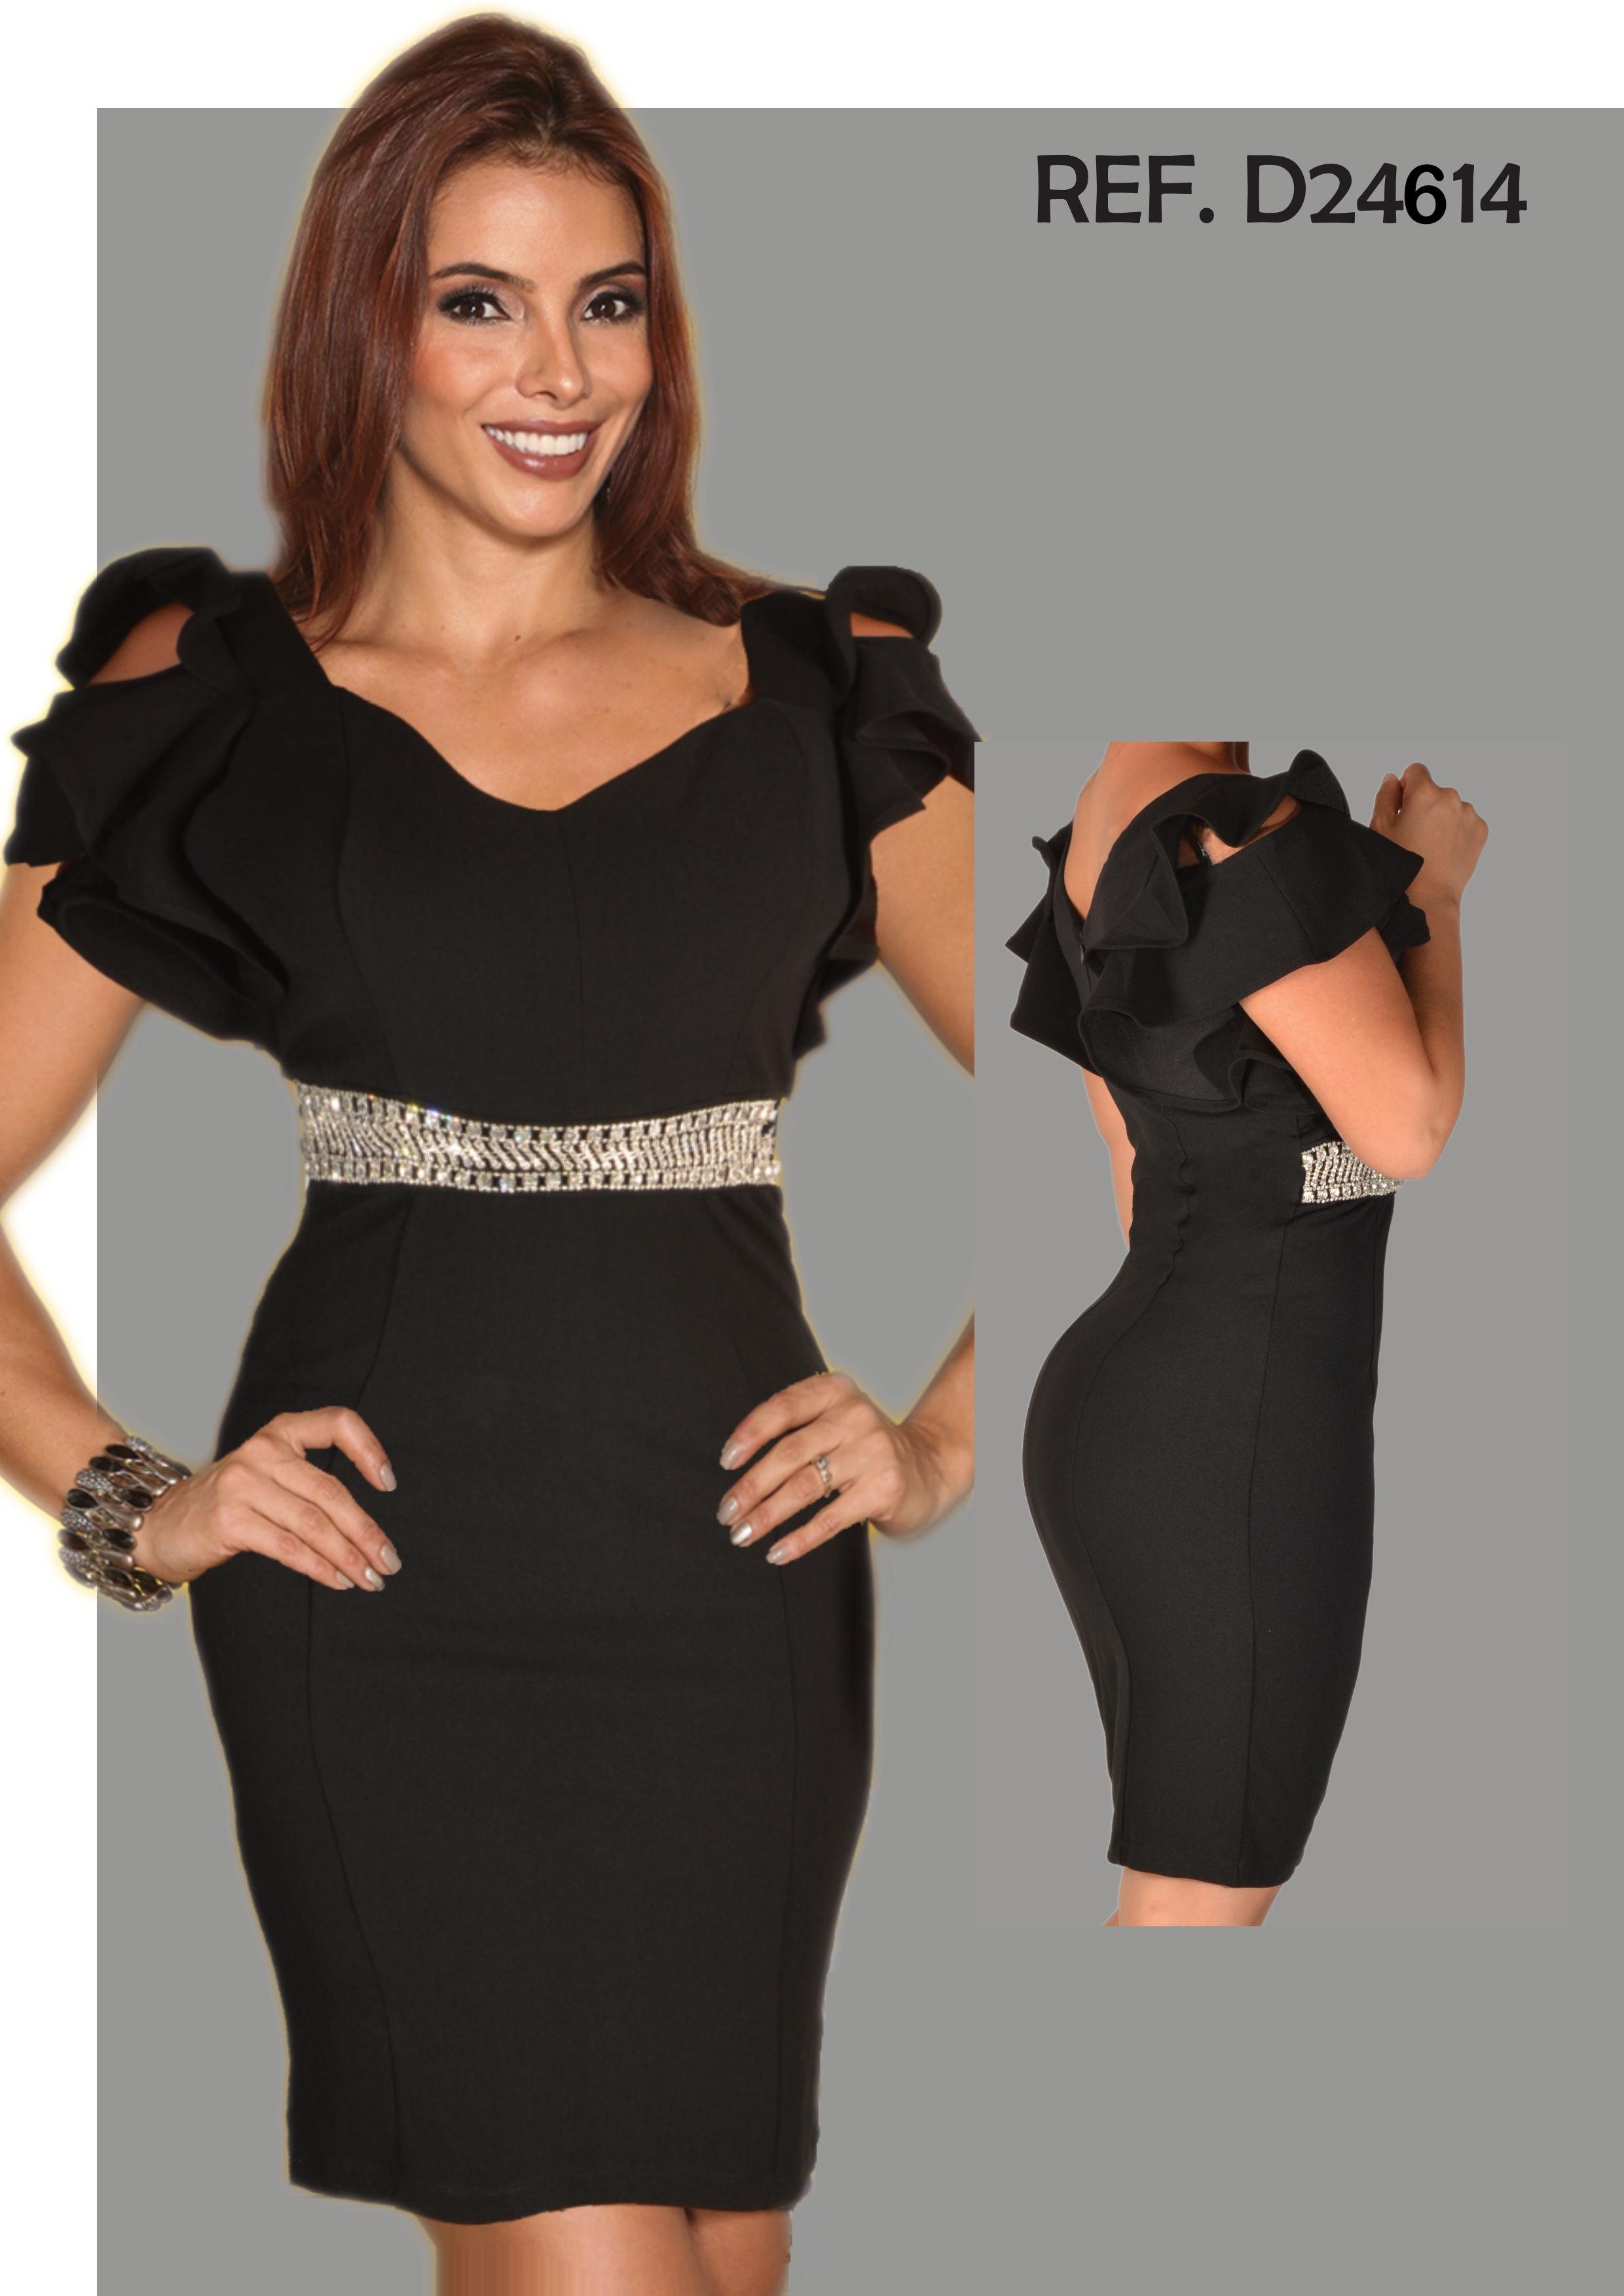 Sensational American Lady Dress Black Color with Belt Design in Classic Long Rhinestones at the Knee